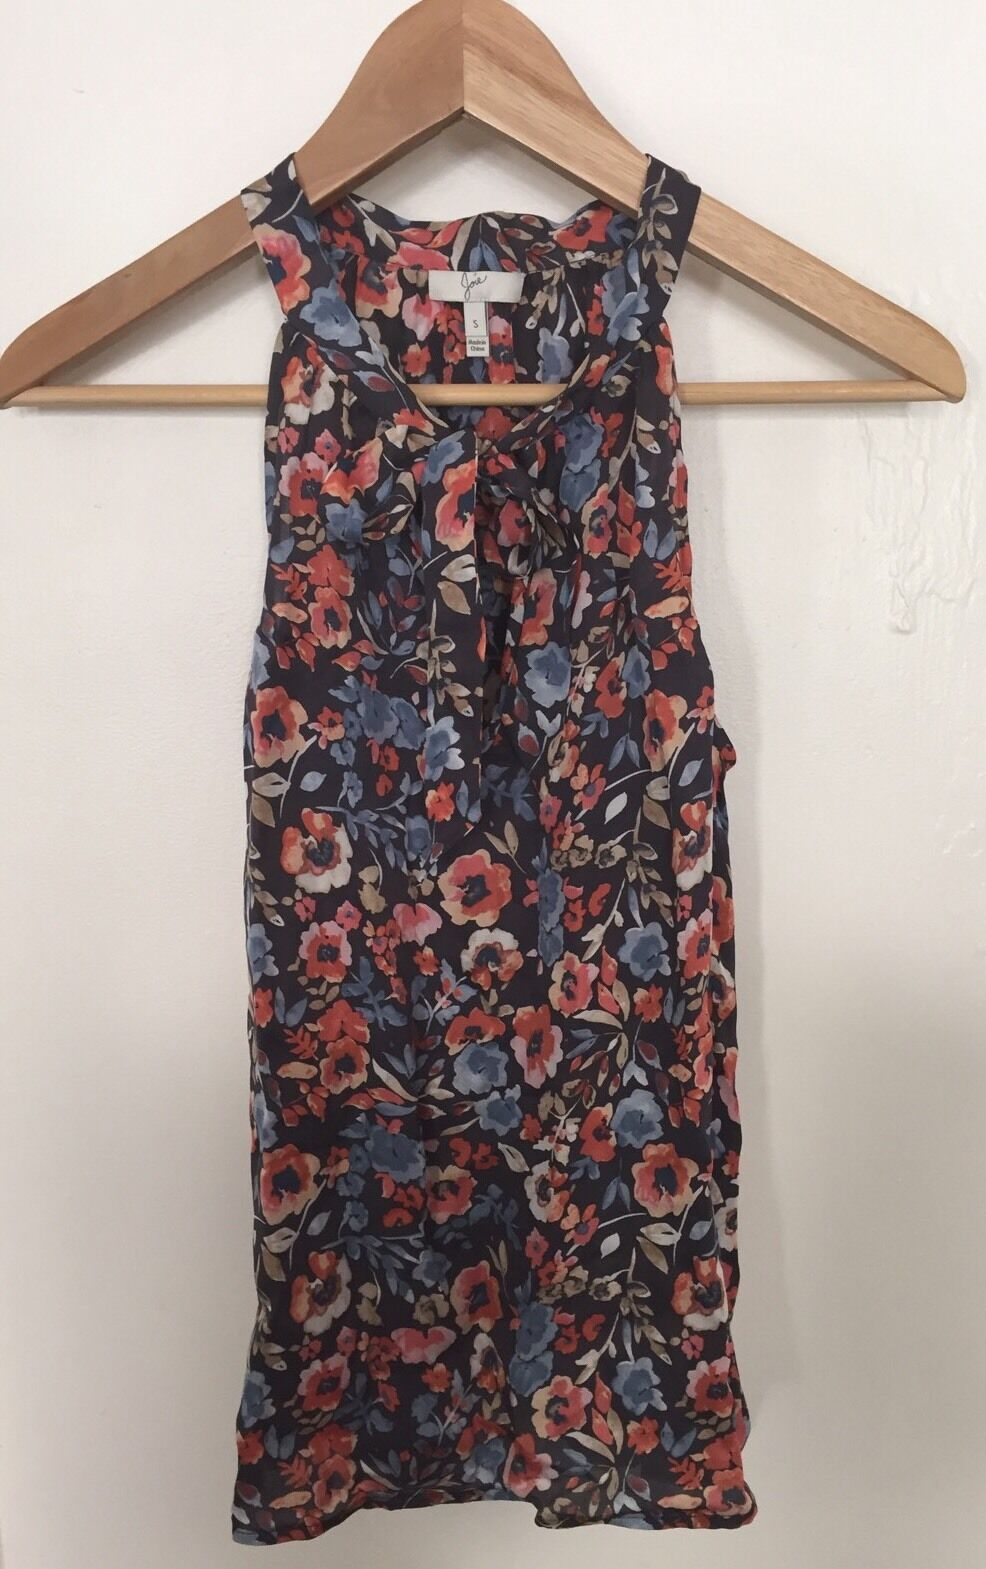 JOIE Floral Sheer Sleeveless Pussybow Blouse Größe S NWOT